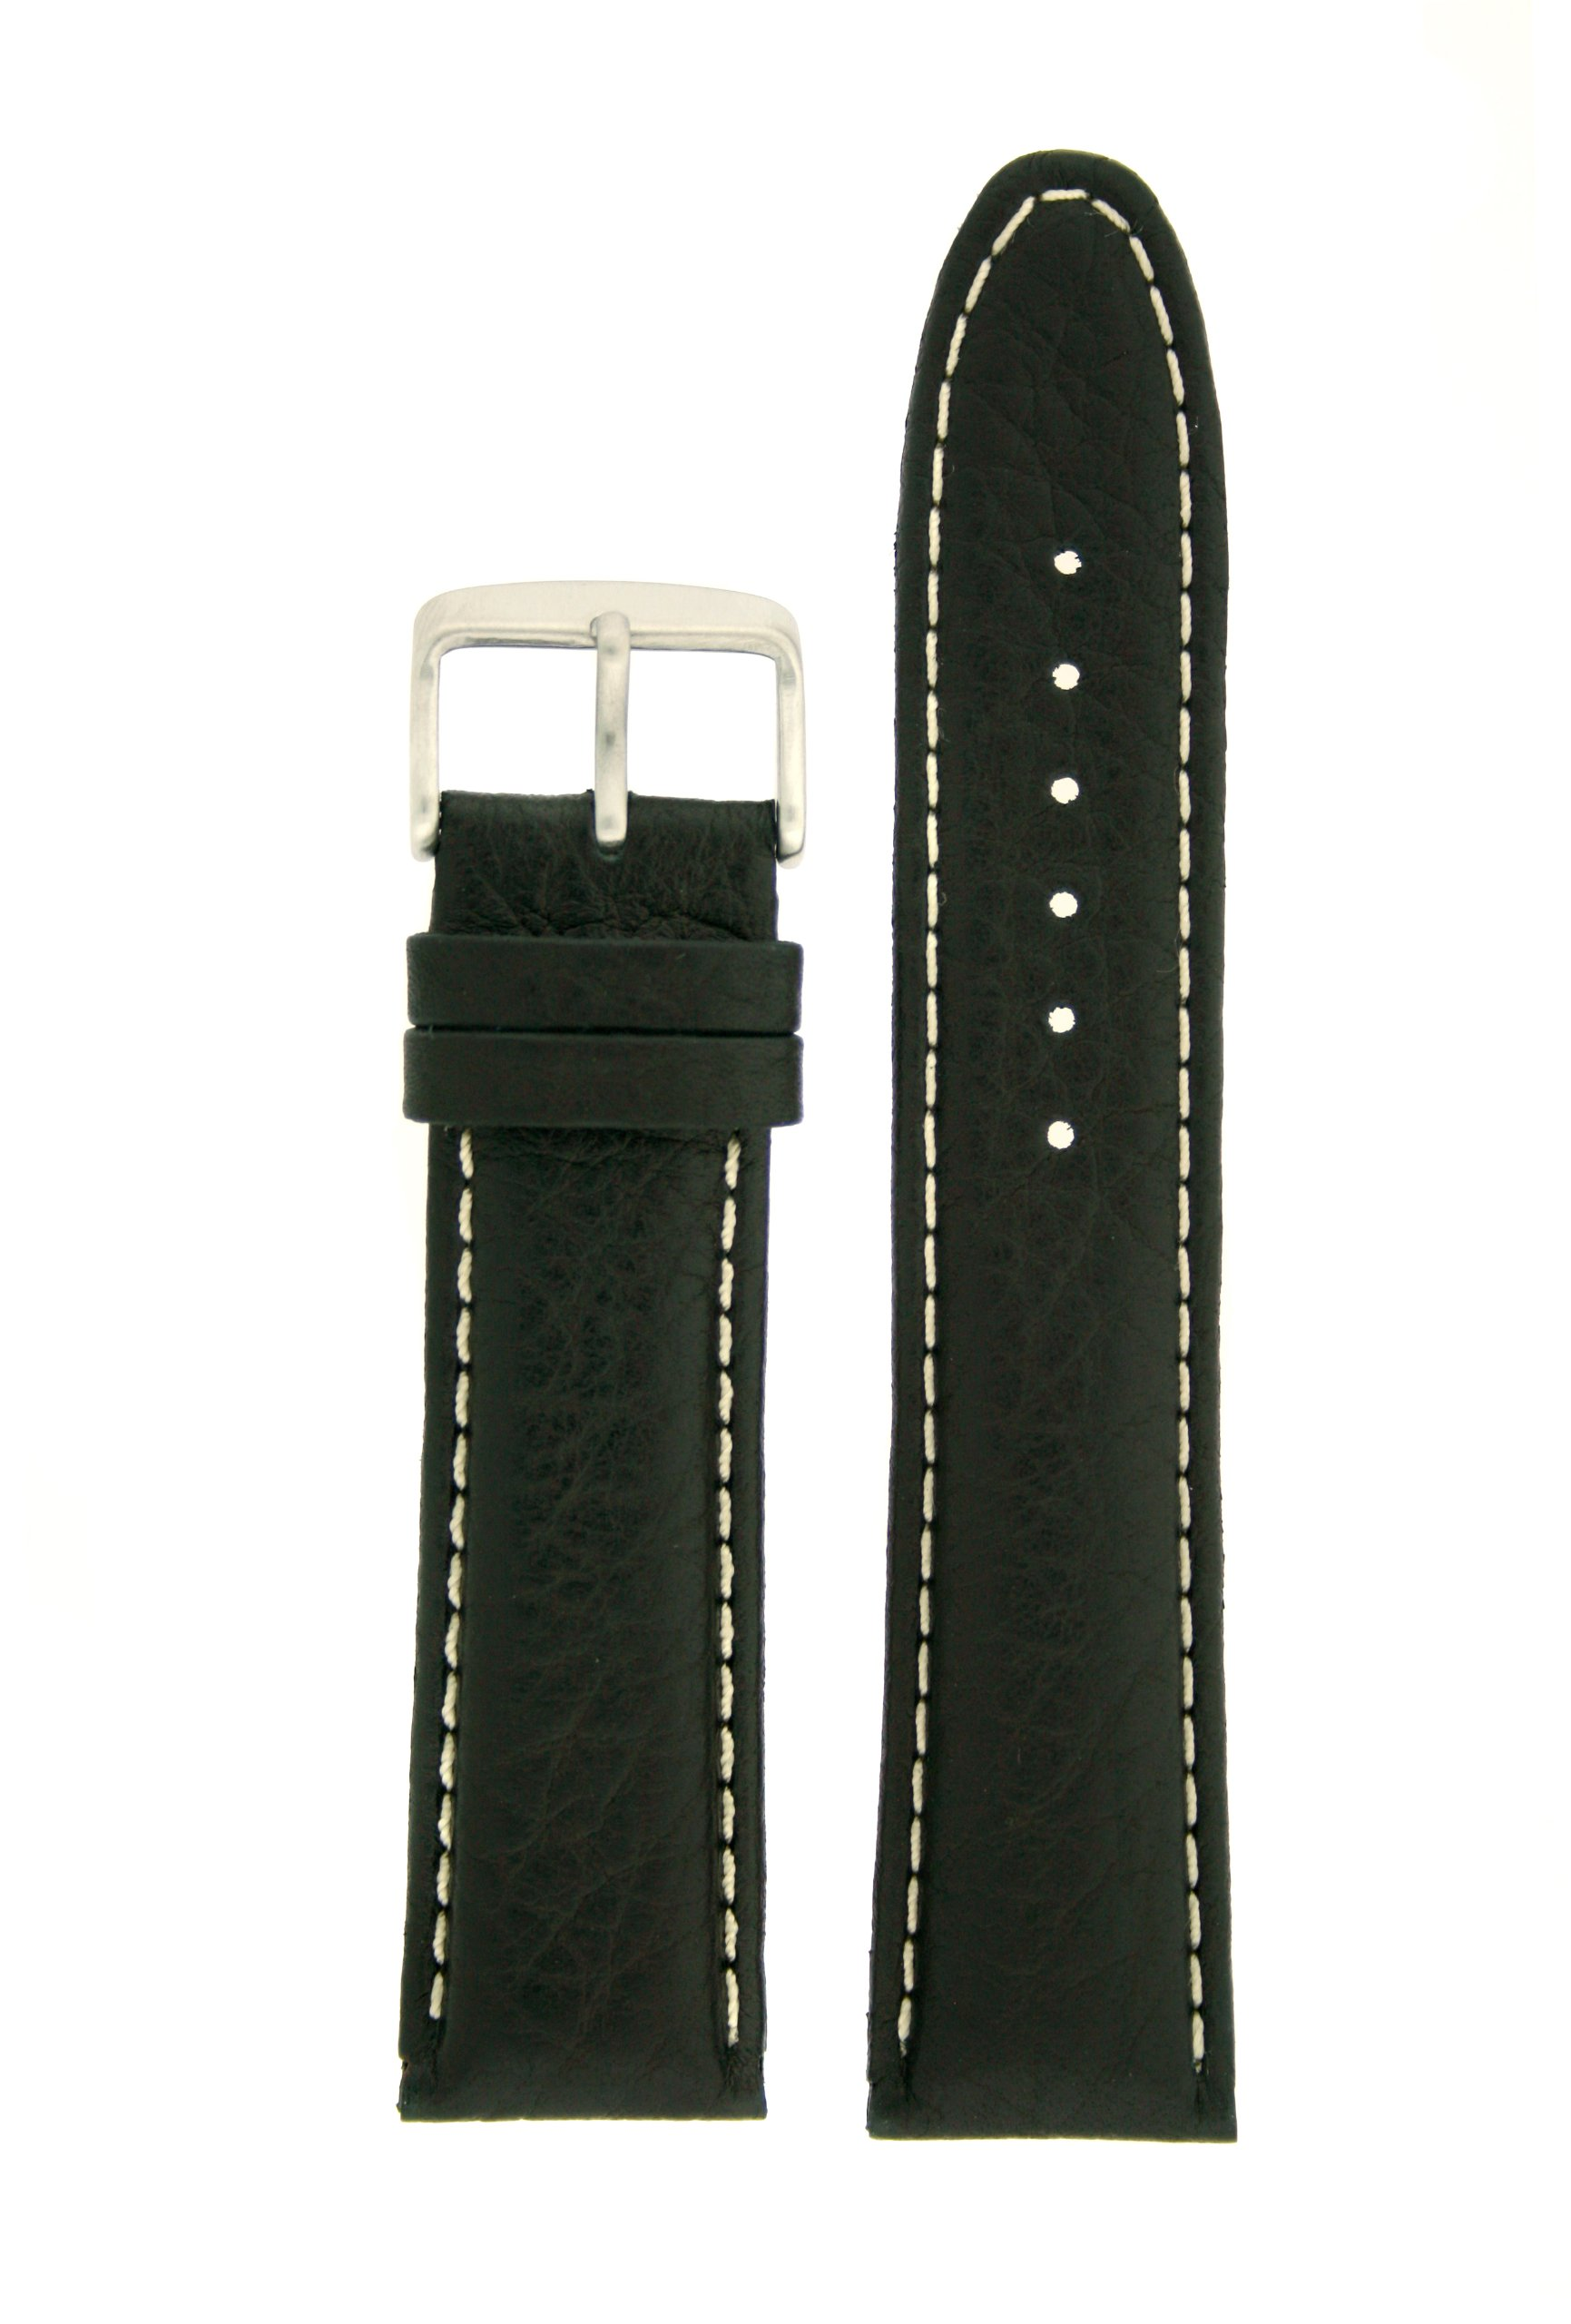 Extra Thick Padded Watch Band Genuine Leather Black 22 millimeters White Stitching Tech Swiss